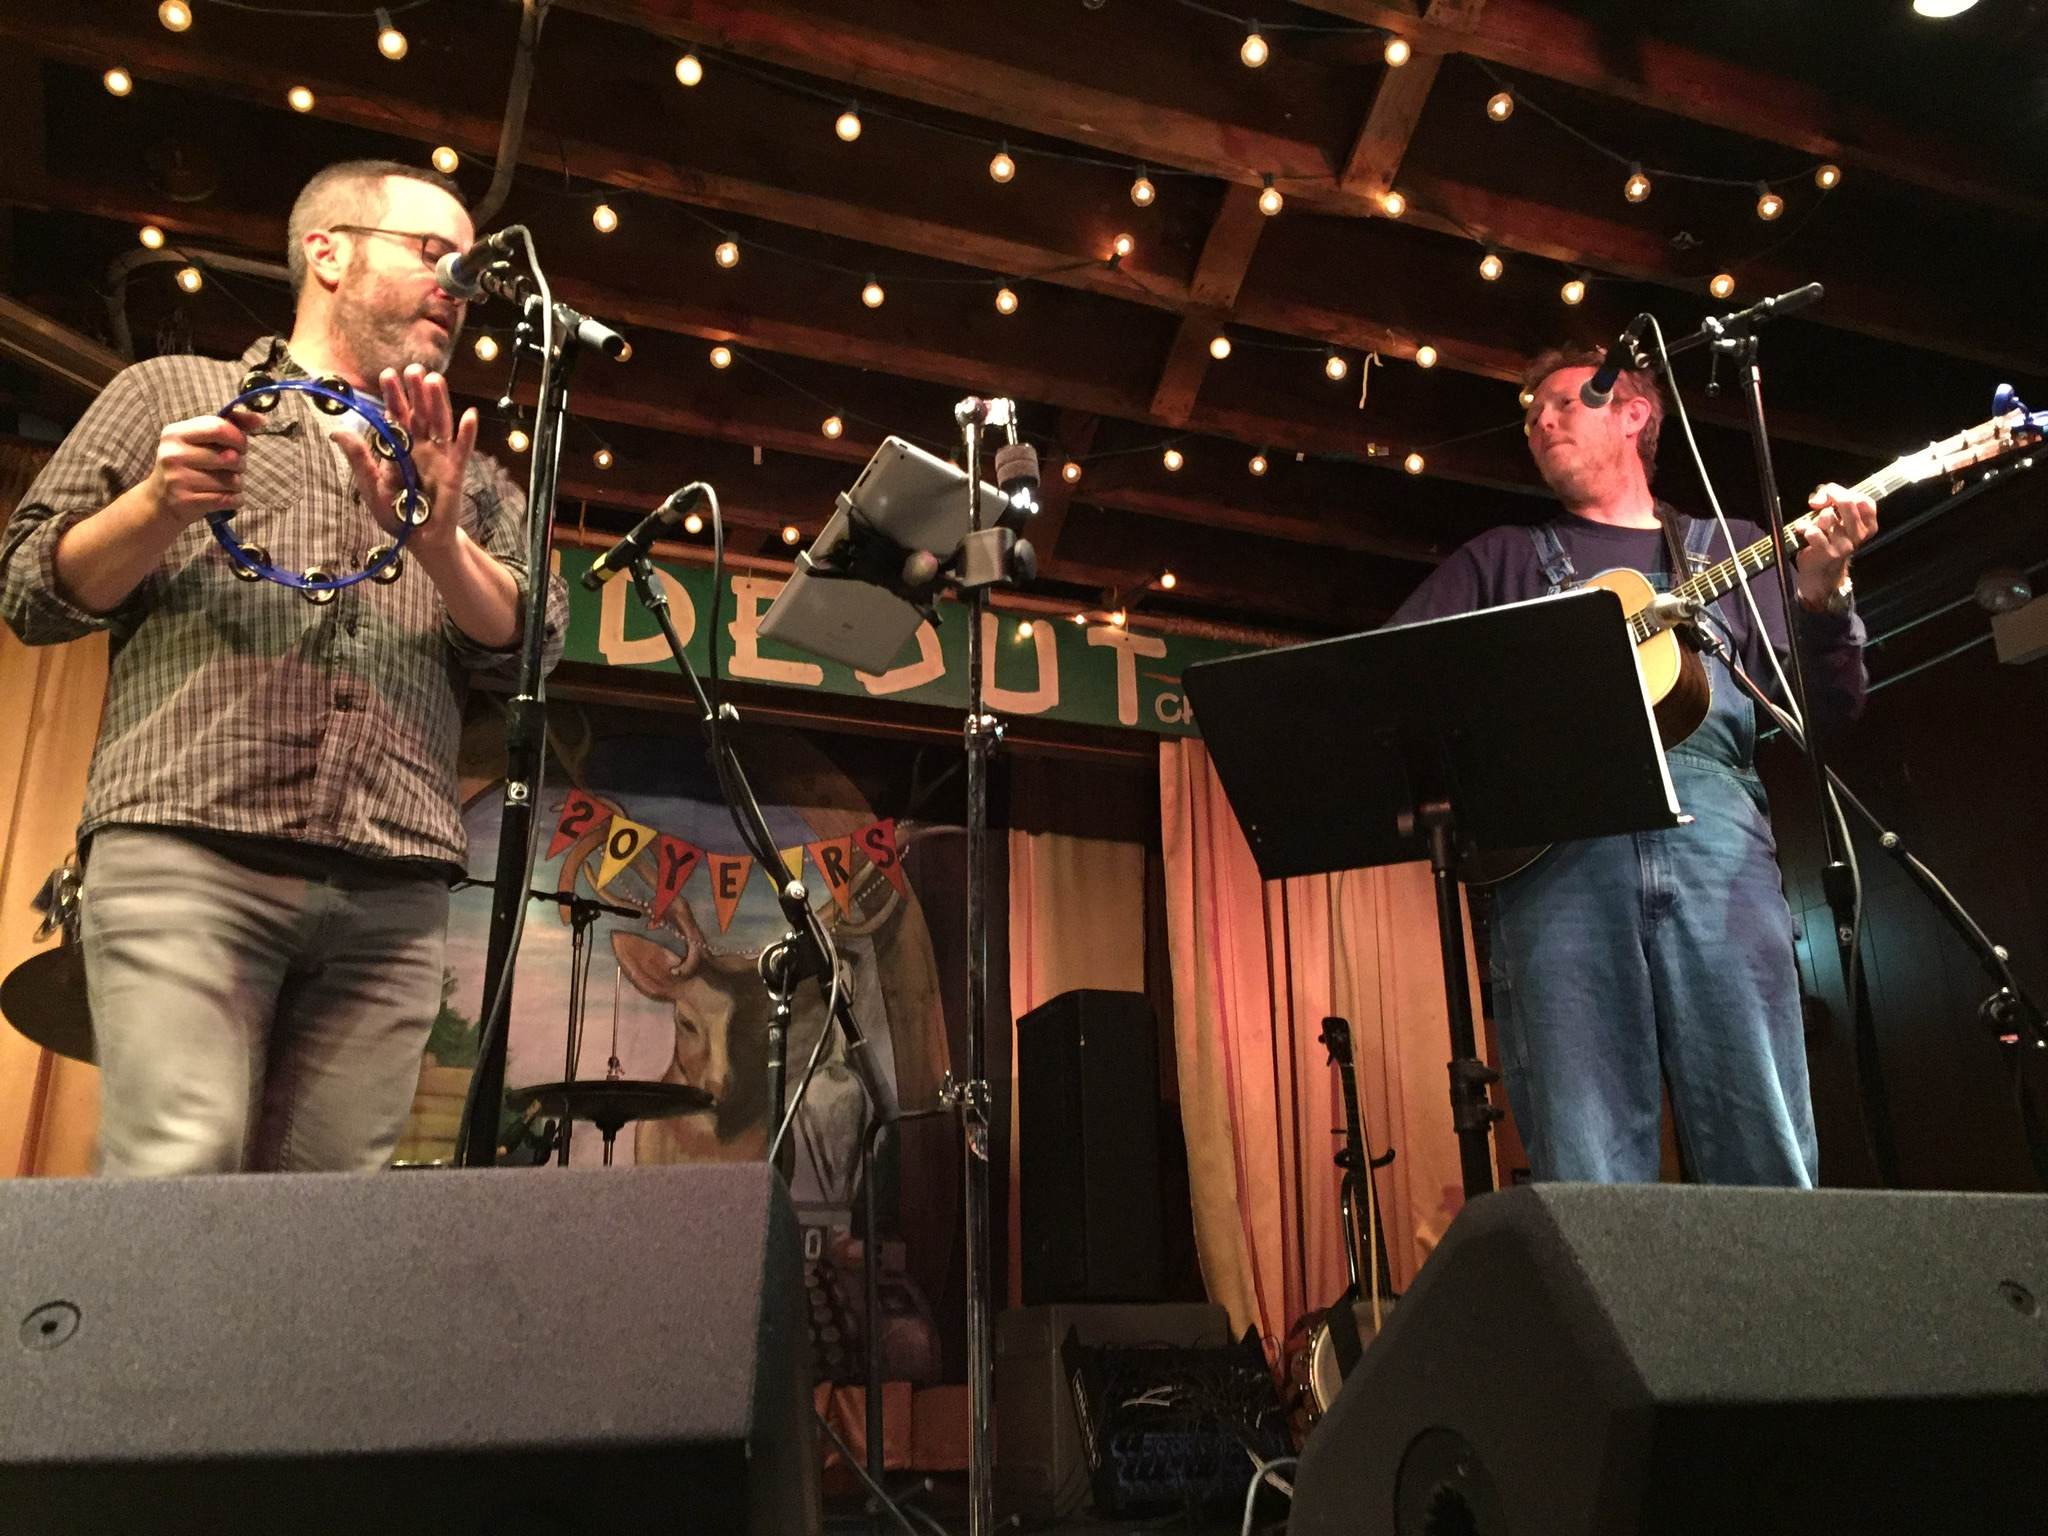 "Gerald Dowd (left) and Robbie Fulks  singing ""Try Leaving"" during their show at the Hideout.  Photo taken by and the property of FourWalls."